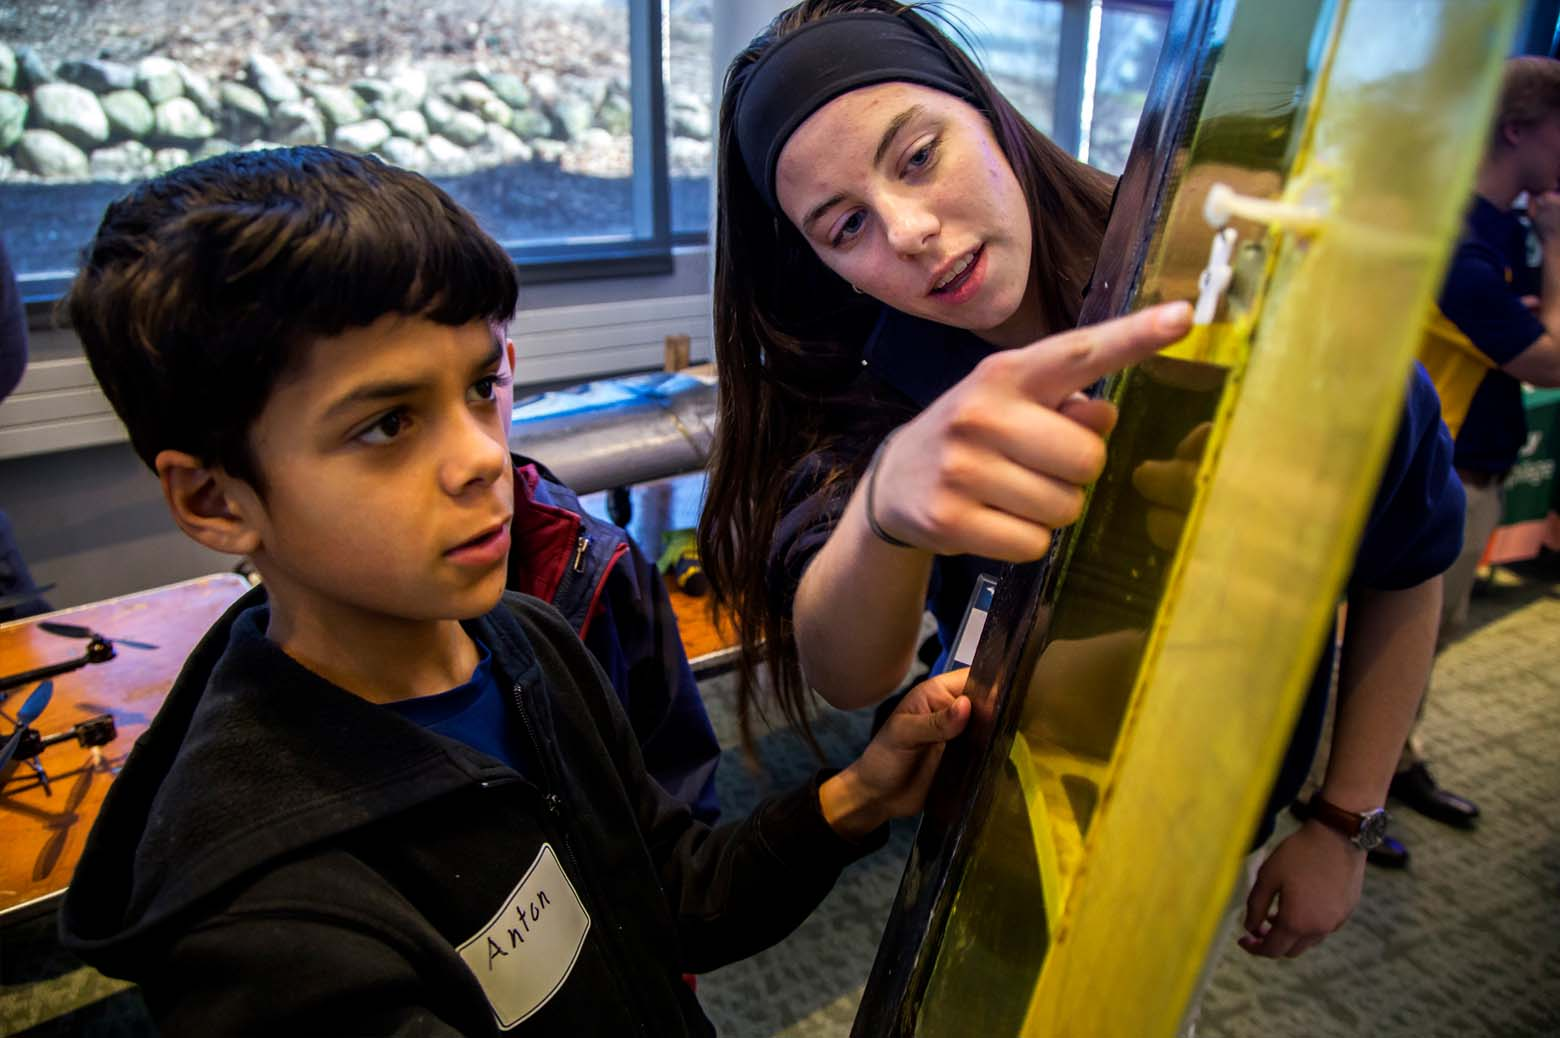 A female Michigan Engineering student shows a young boy the wing of a model plane.